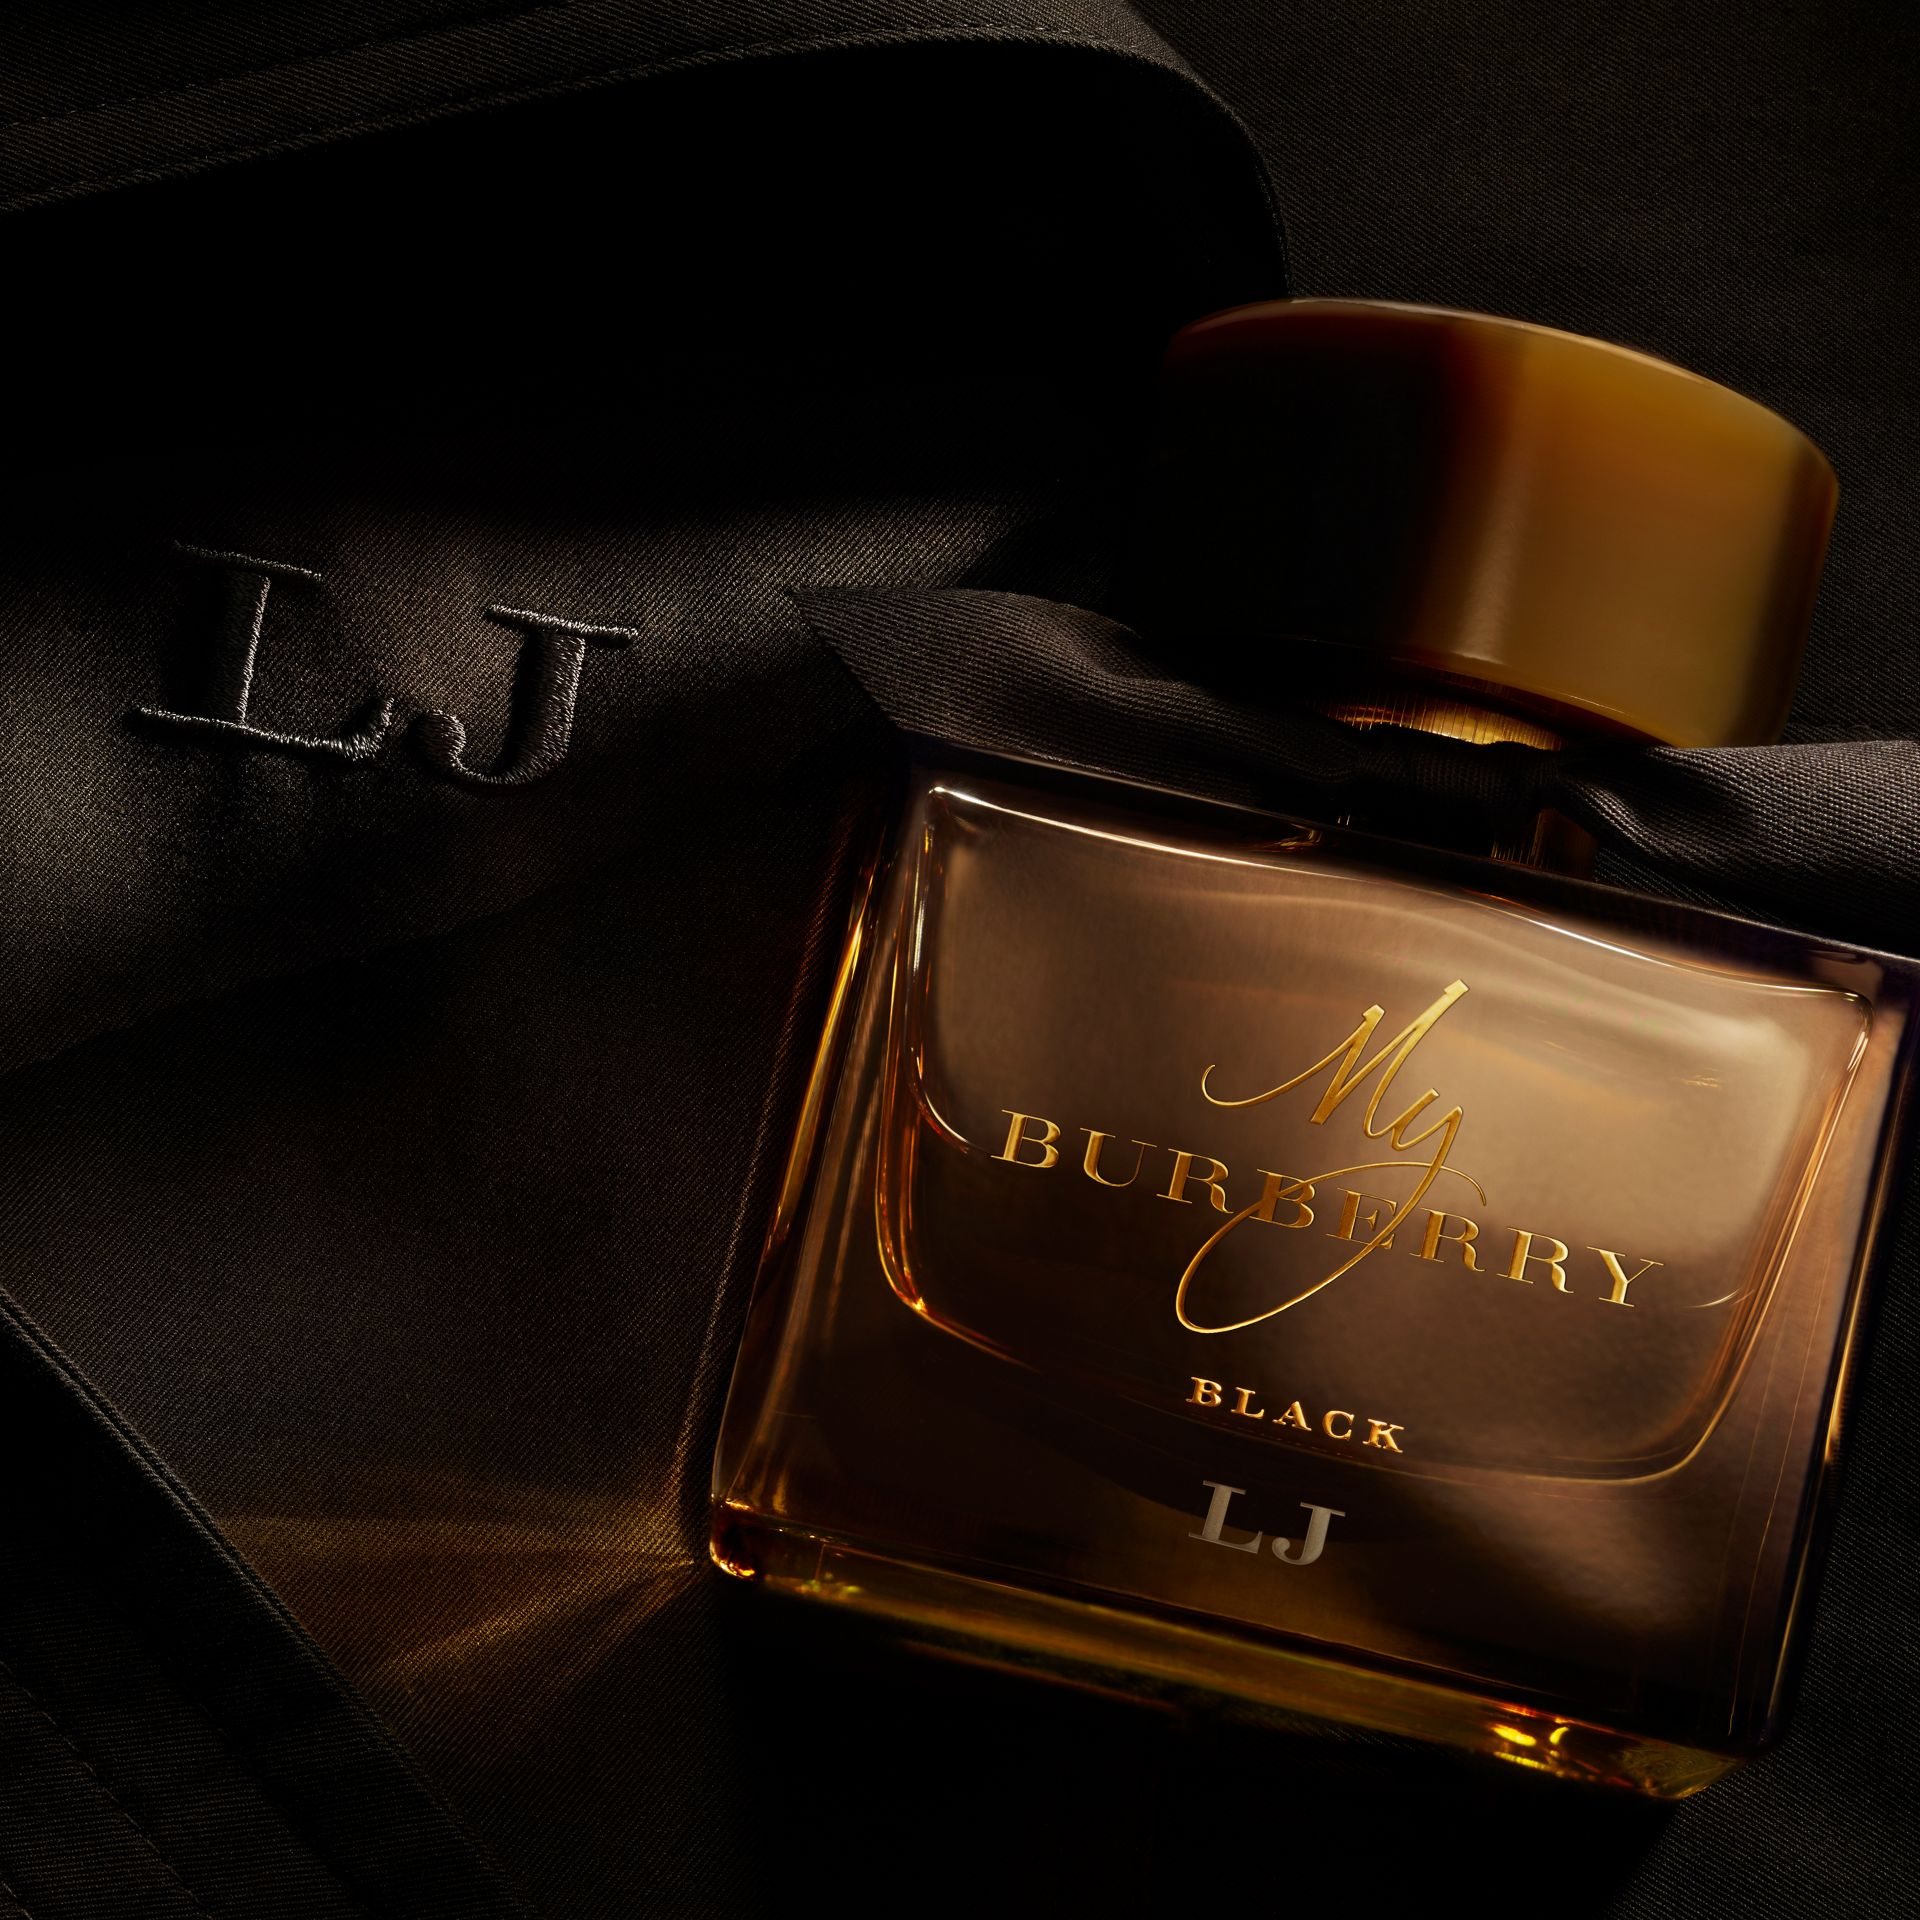 My Burberry Black Parfum 50ml - gallery image 5